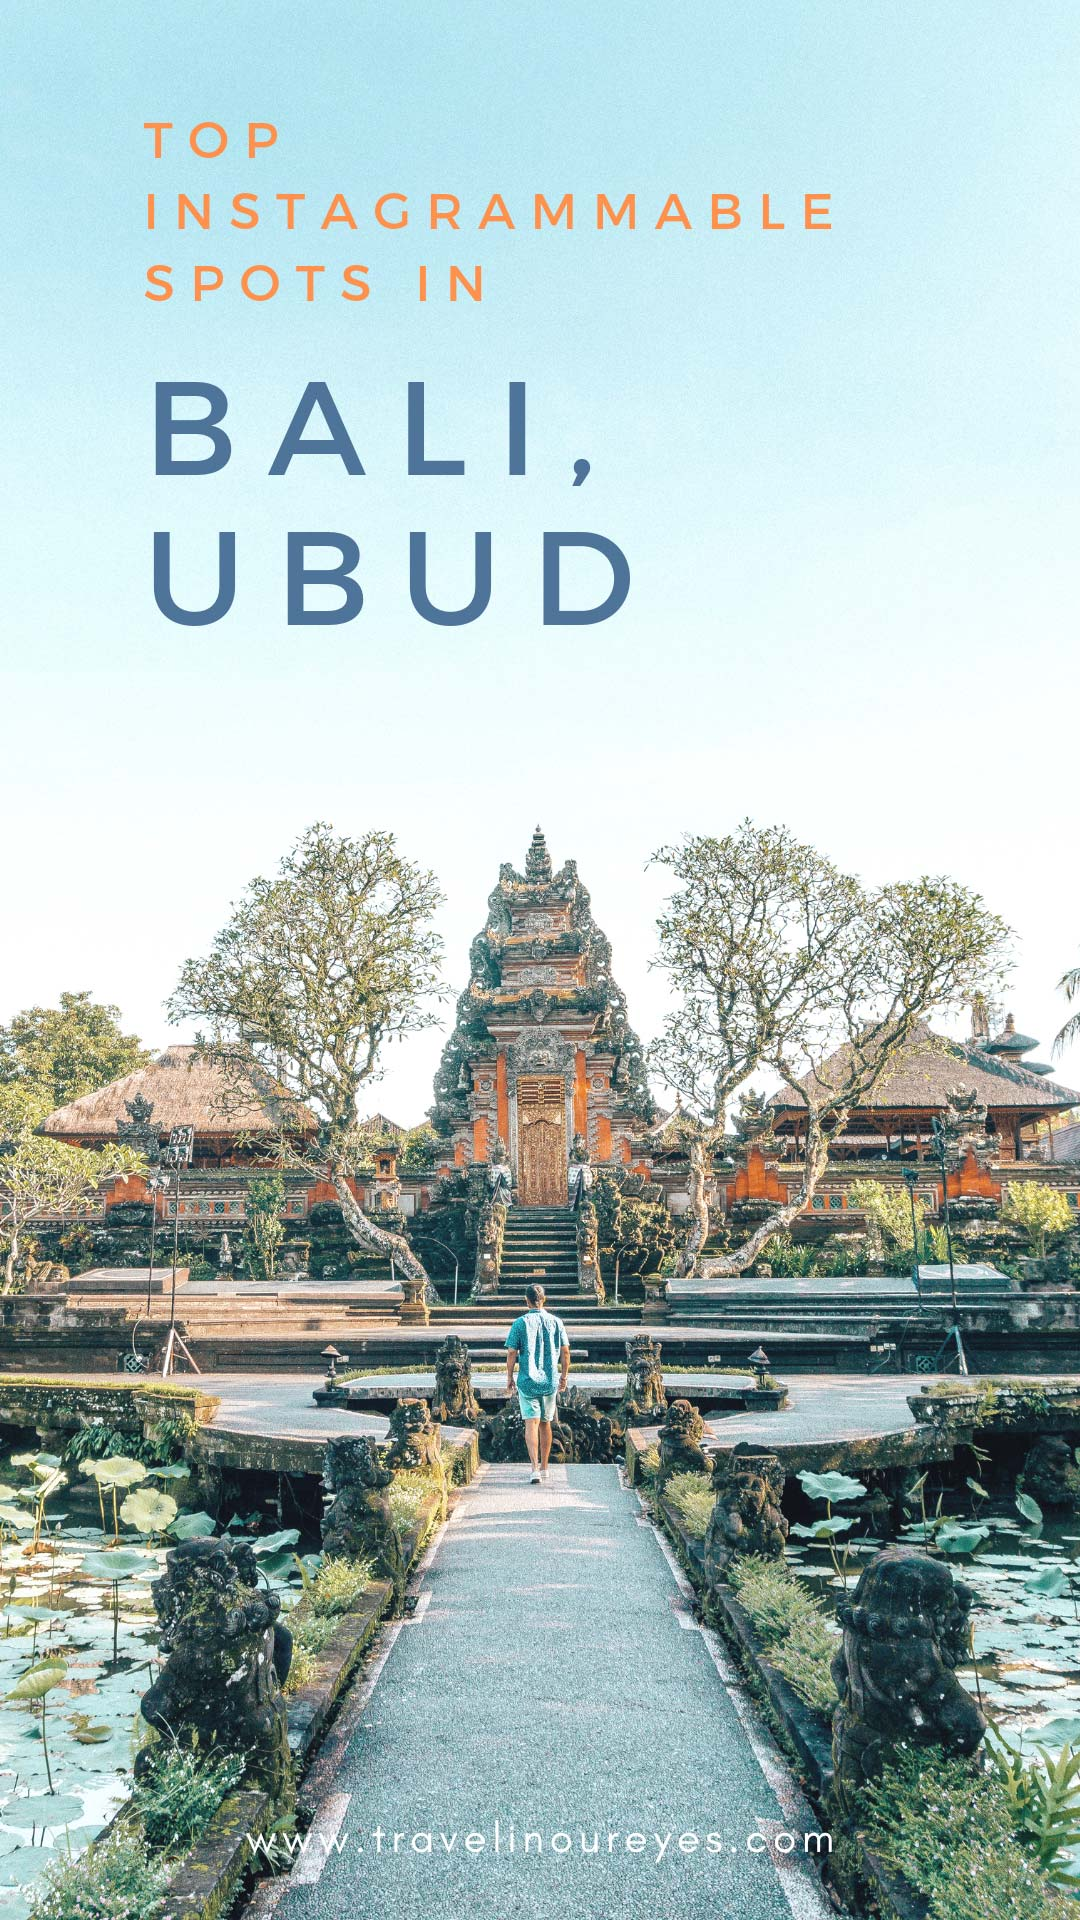 Top Instagrammable Places in Ubud, Bali